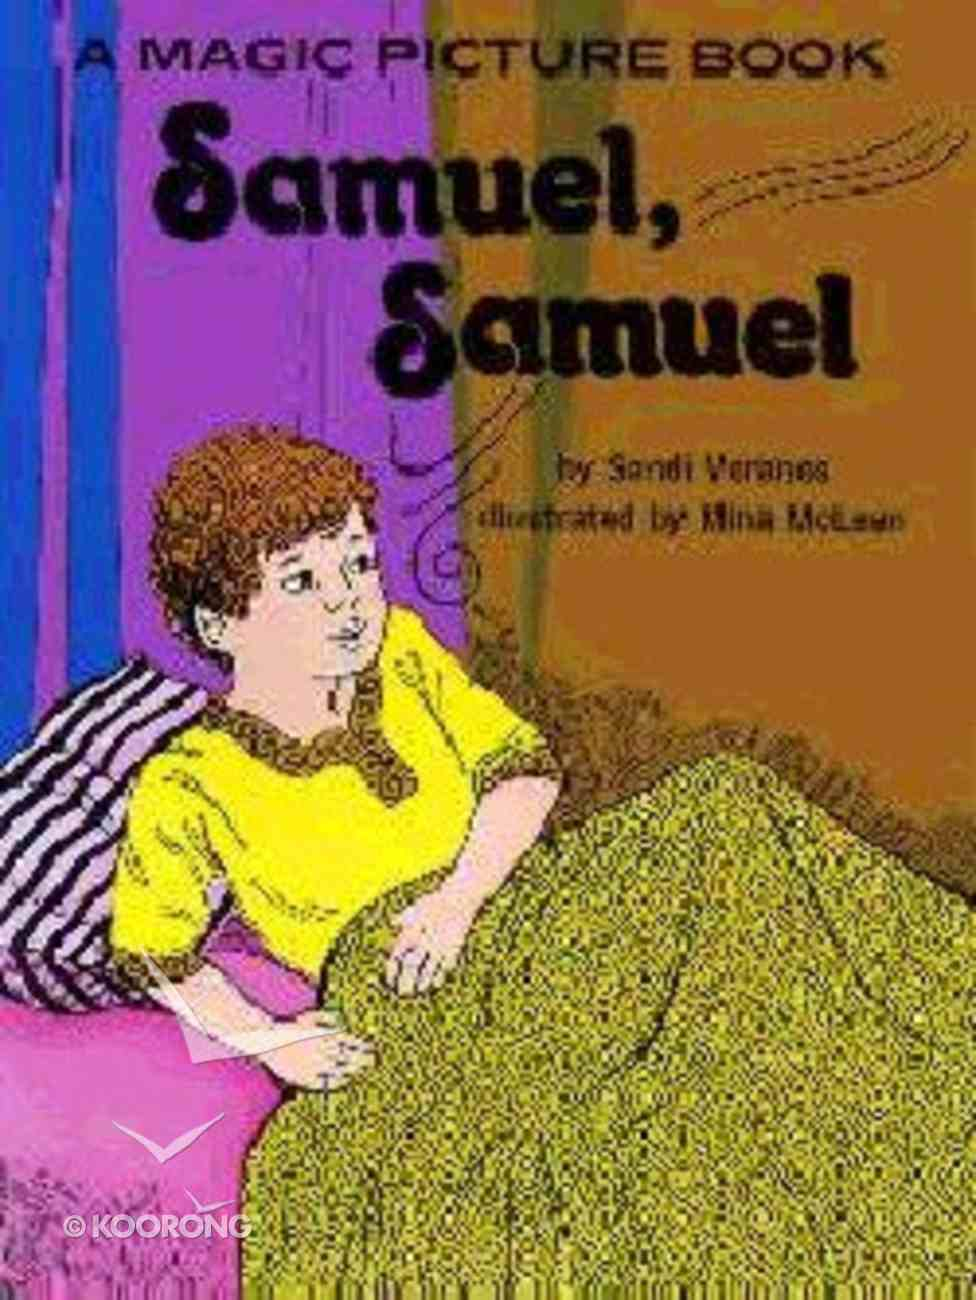 Samuel, Samuel (Pencil Fun Books Series) Paperback